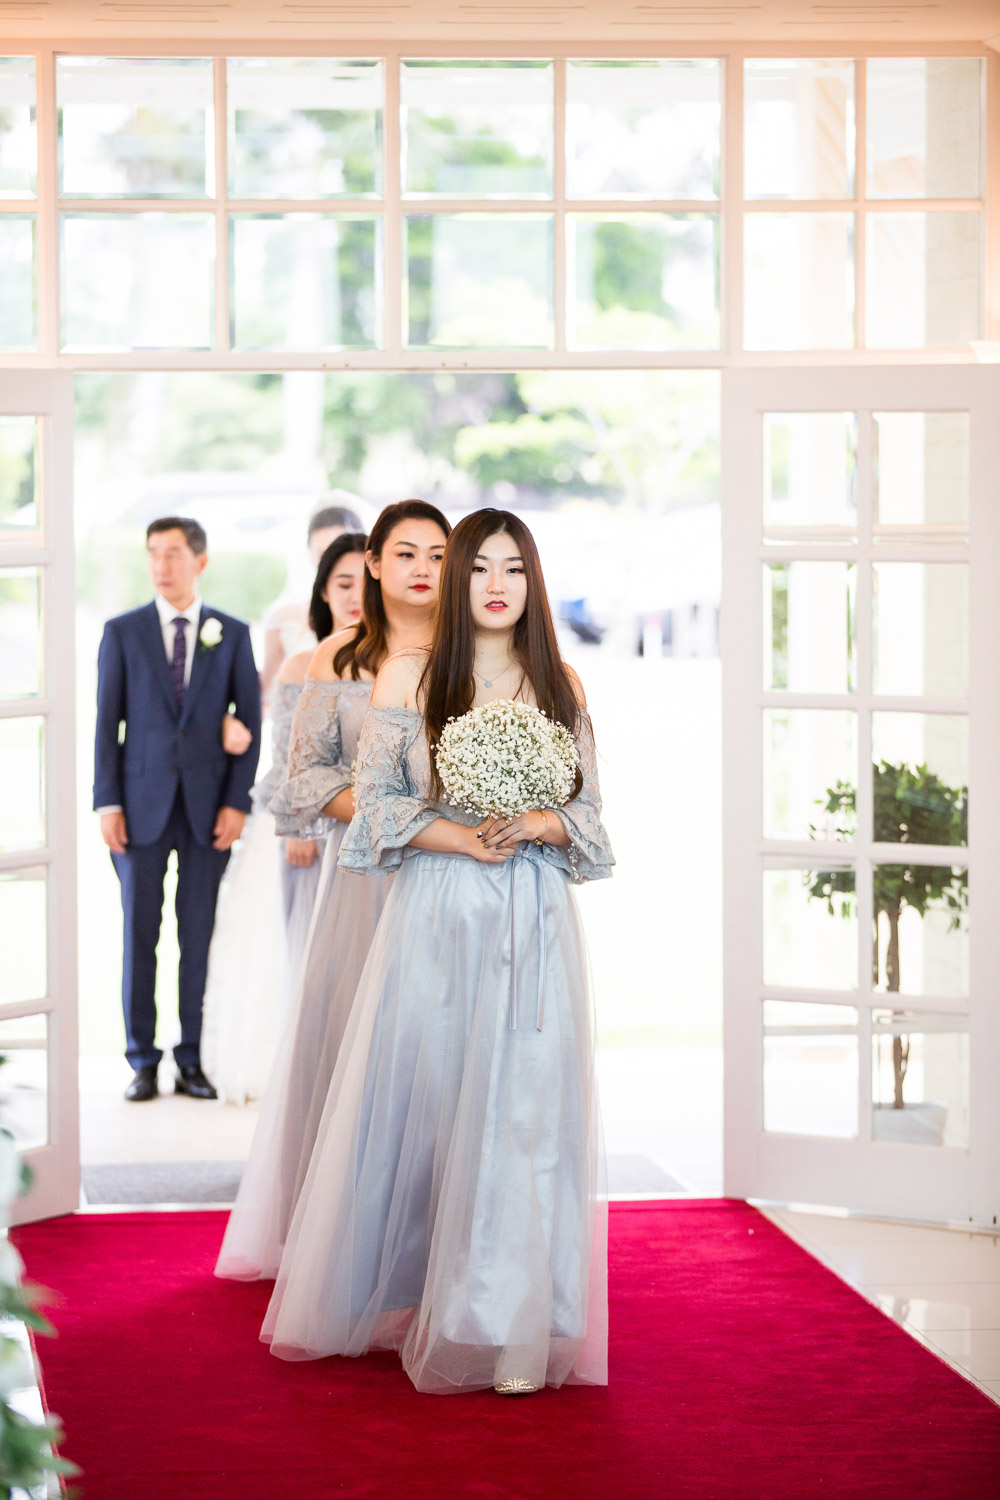 171208 Puremotion Wedding Photography Hope Island Intercontinental VictoriaWei-0080